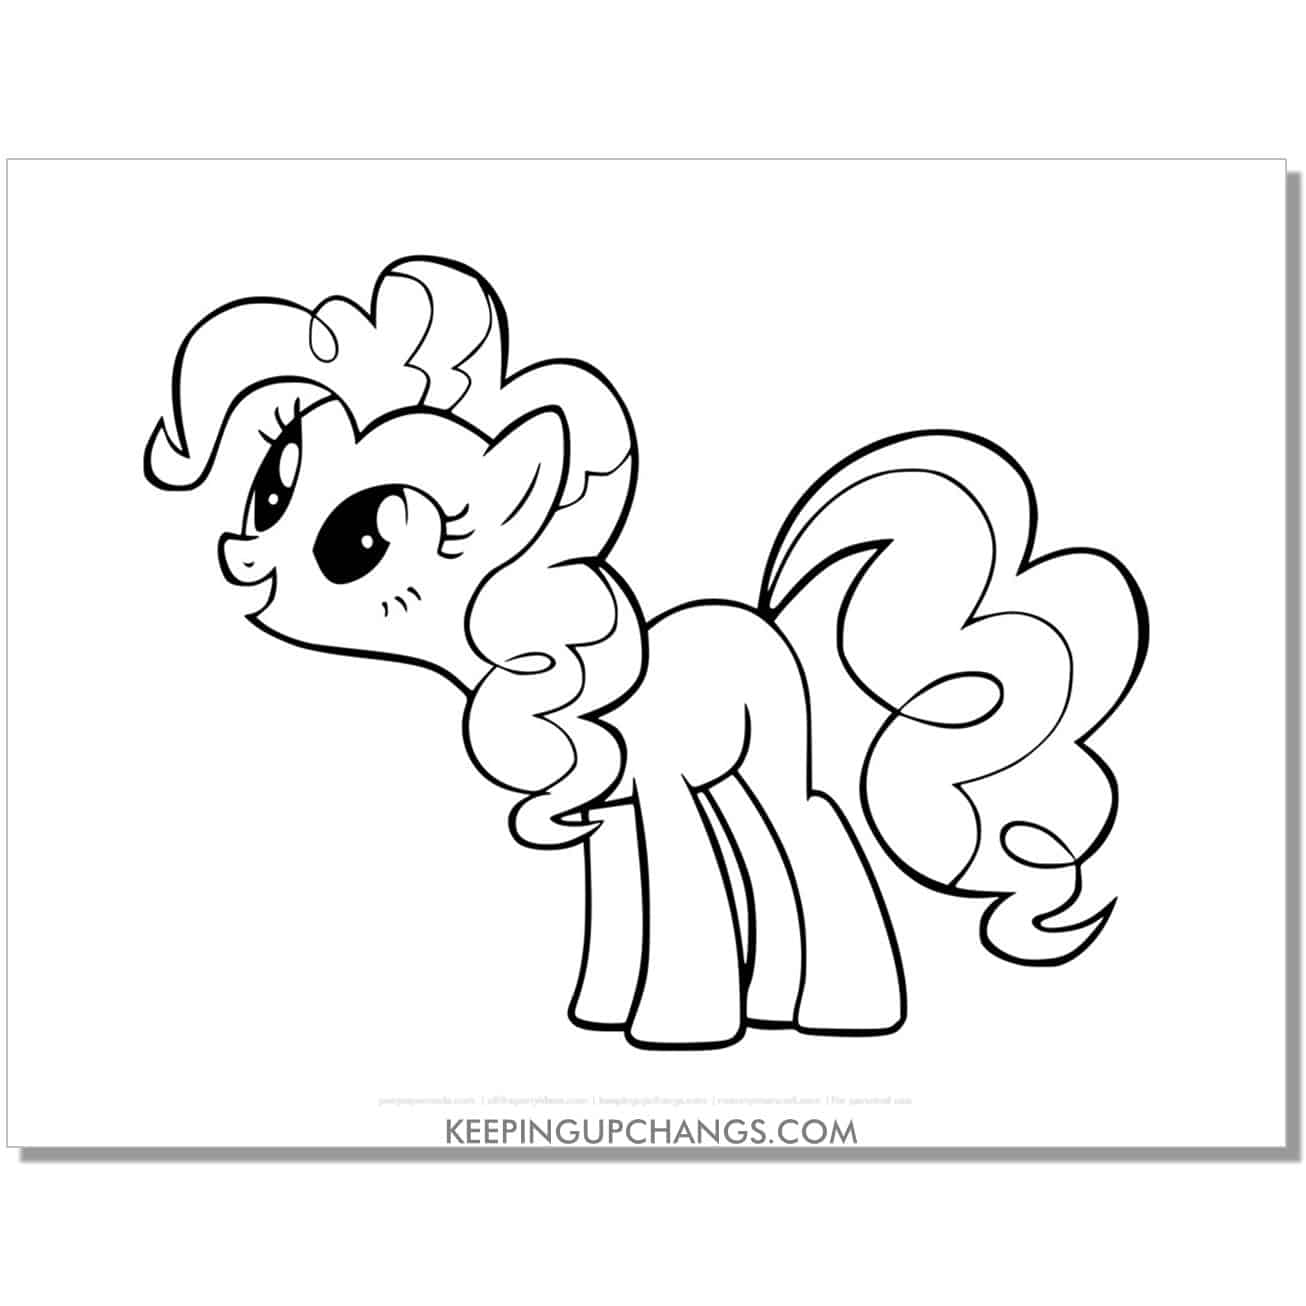 free balloon cutie mark my little pony coloring page.